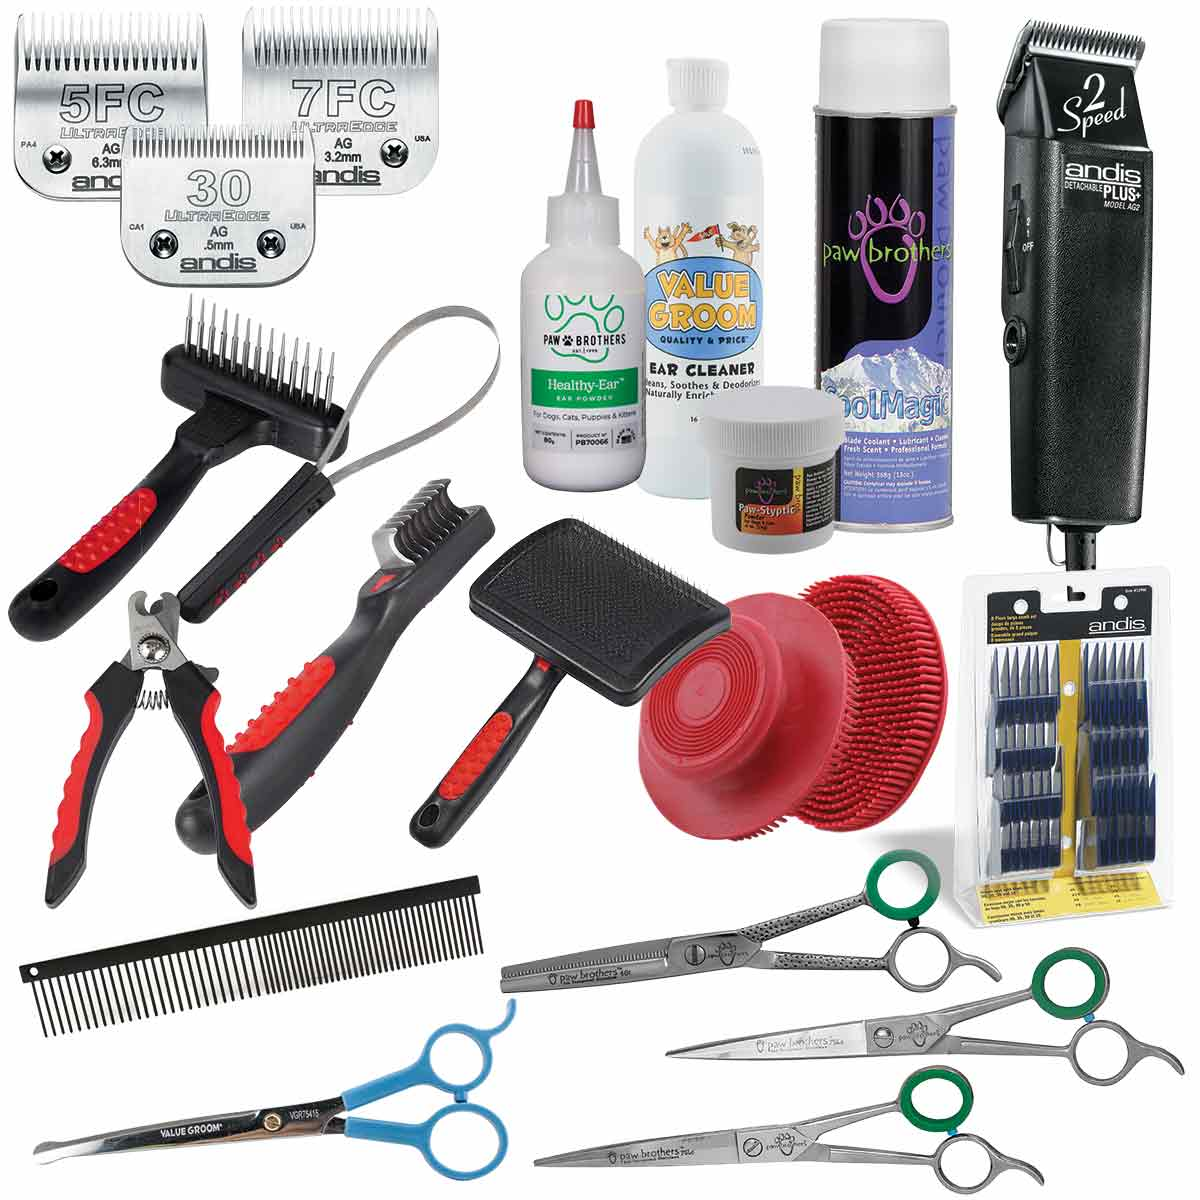 Paw Brothers Basic Grooming Kit with Andis Clippers - Everything a Grooming Student Needs